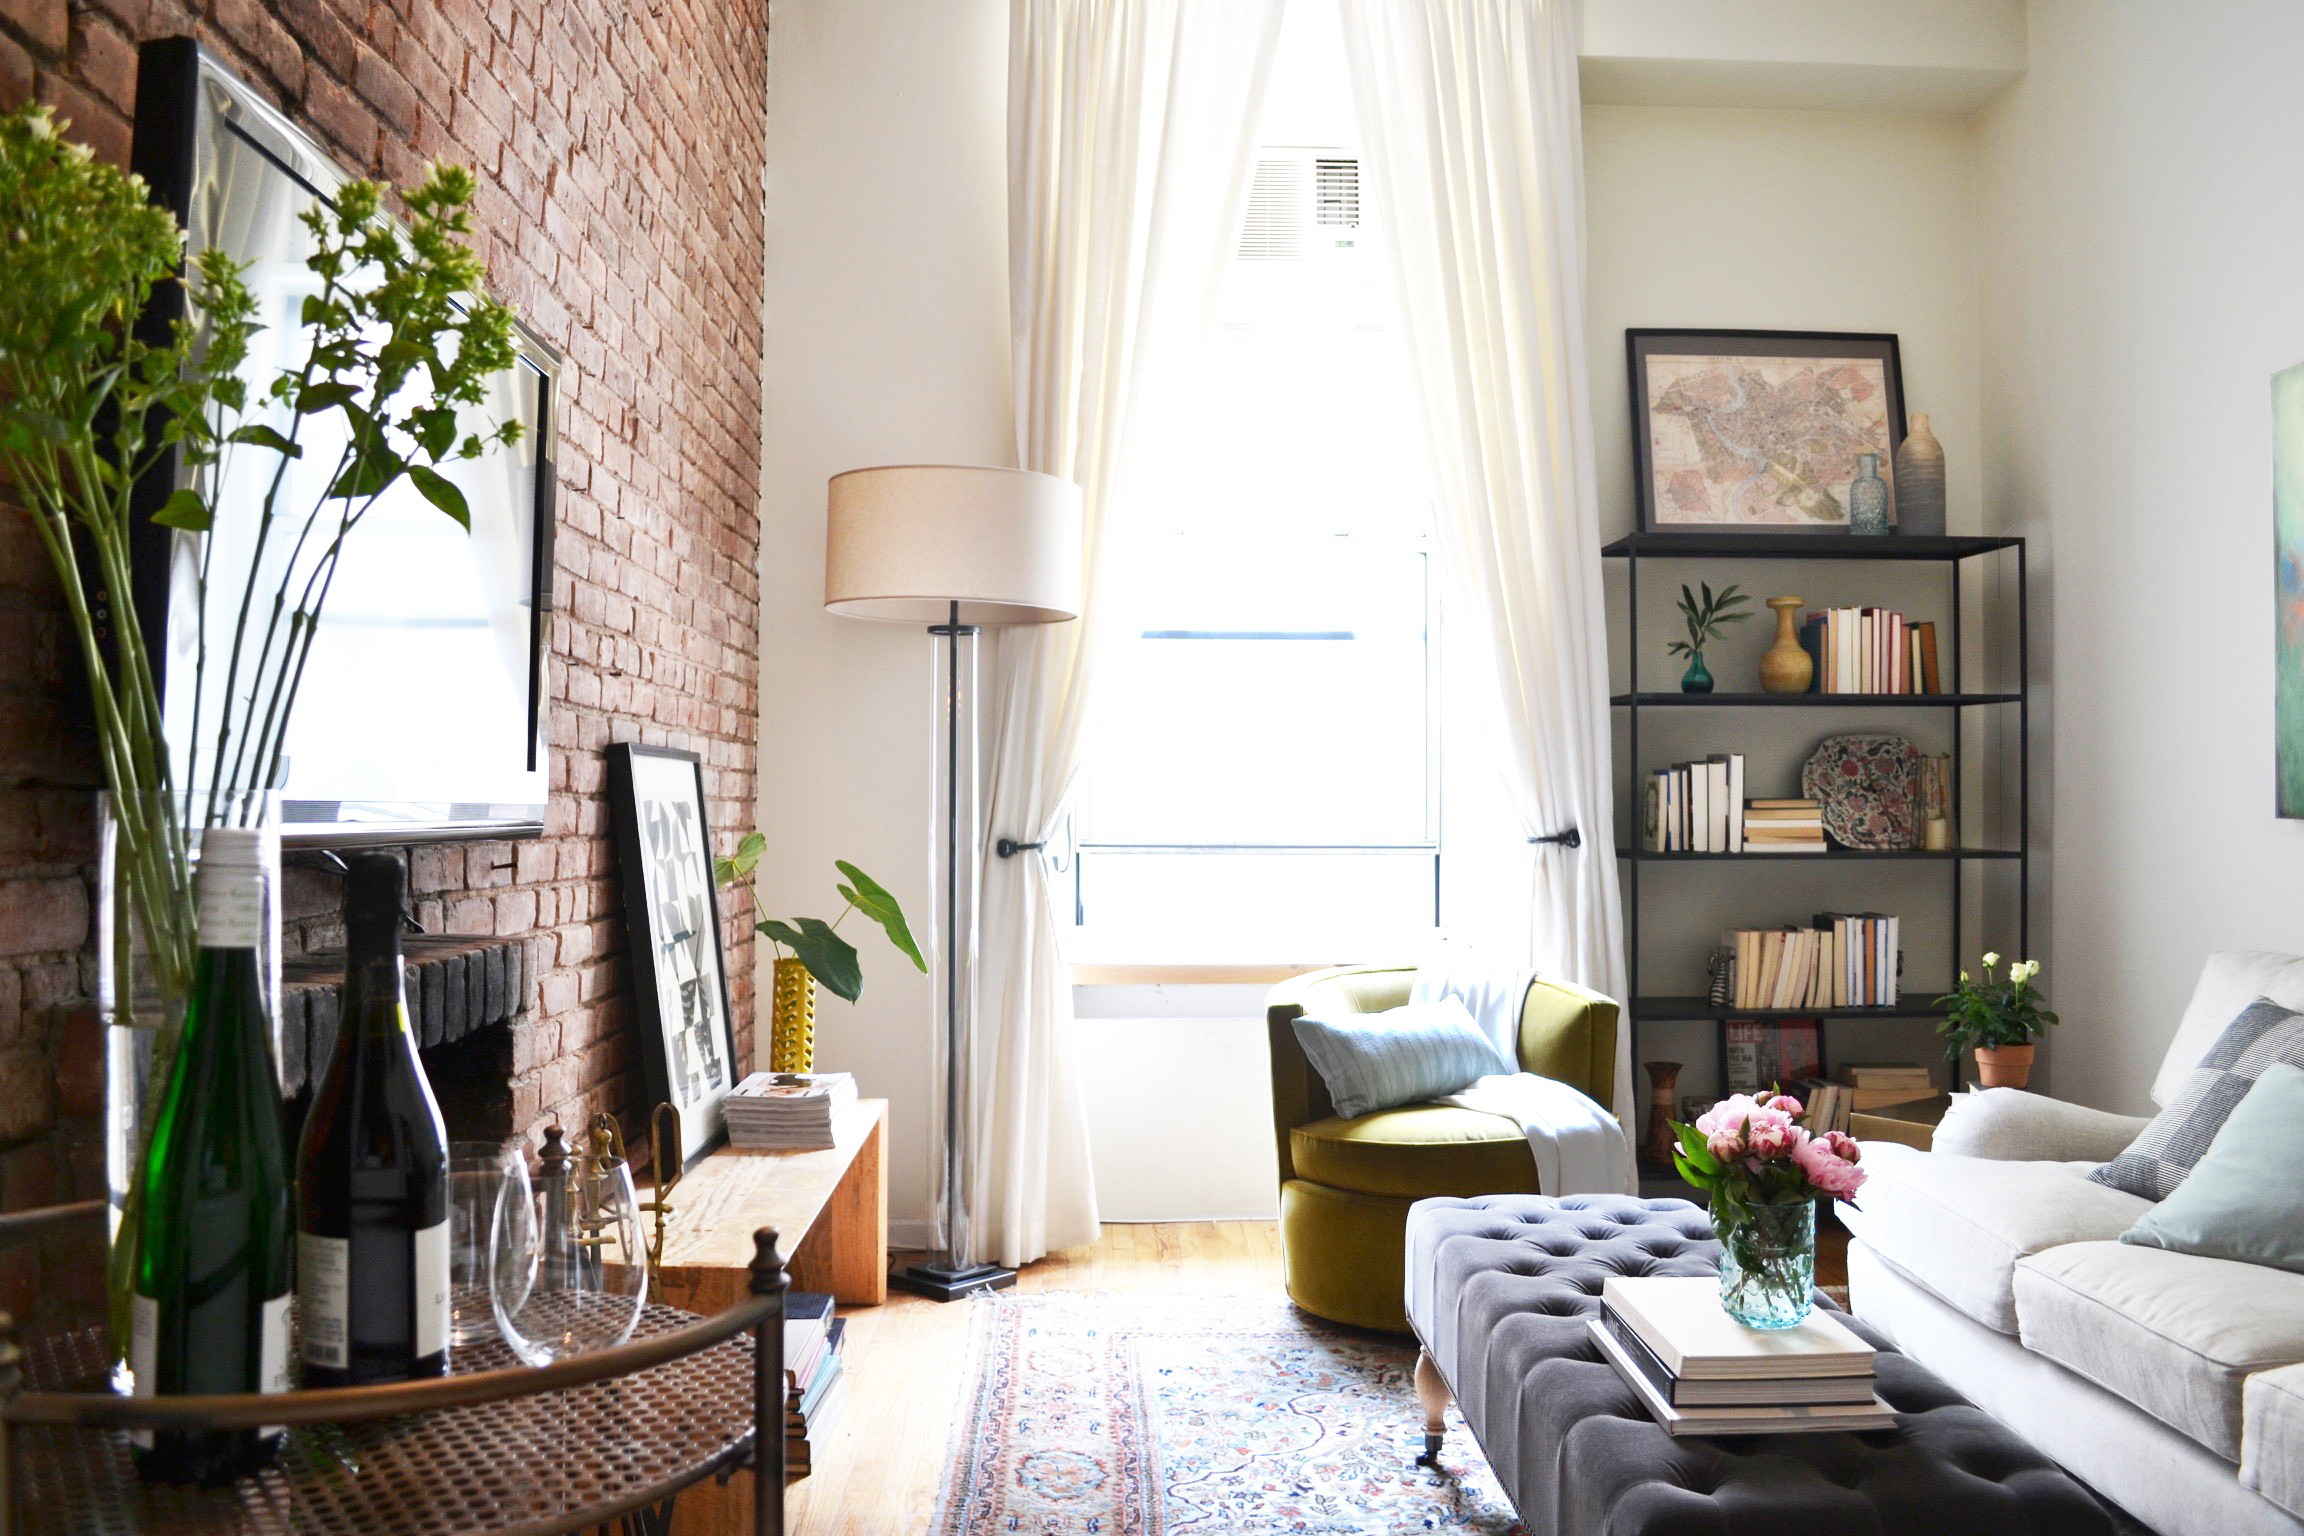 Greenwich Village Loft - Rehabitat